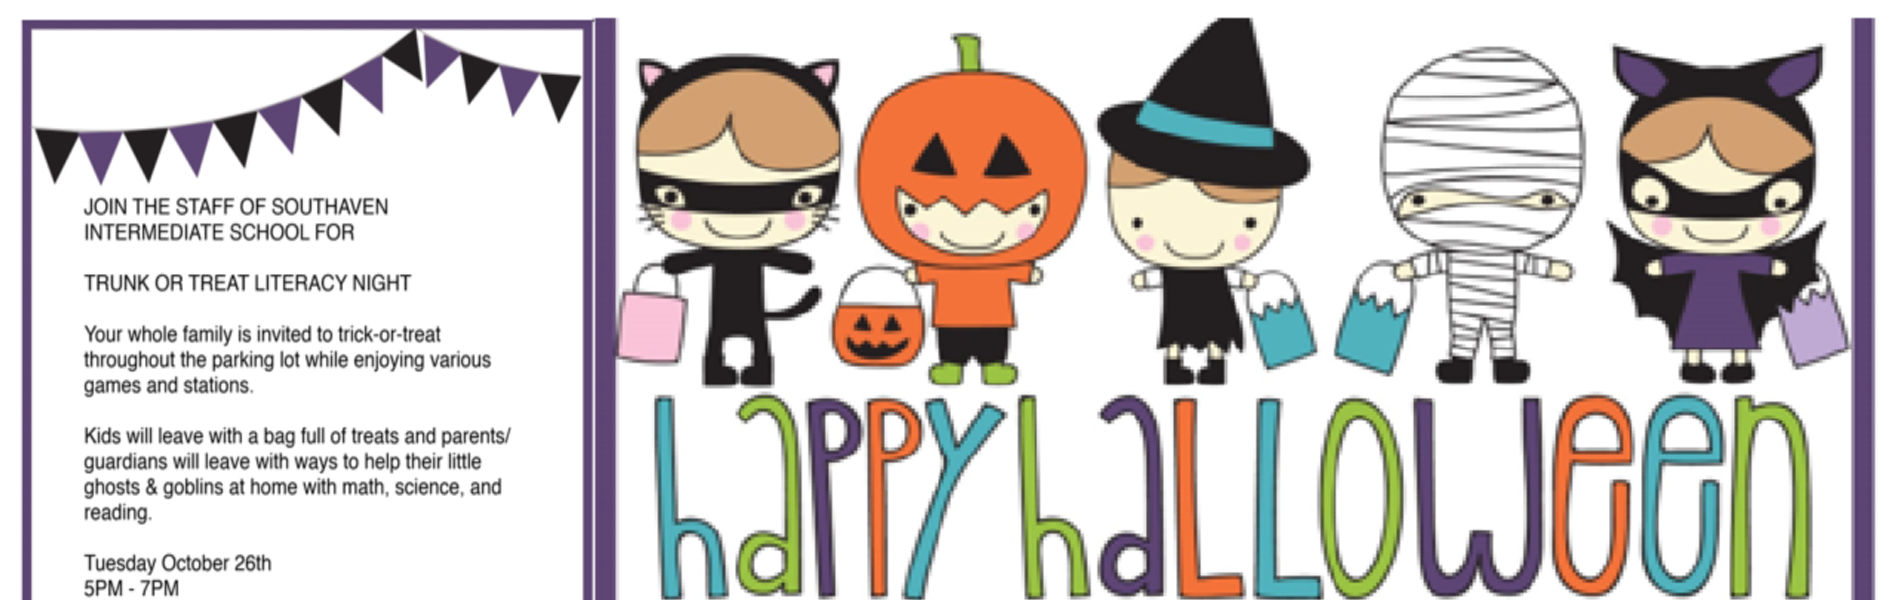 Trunk or Treat Oct. 26